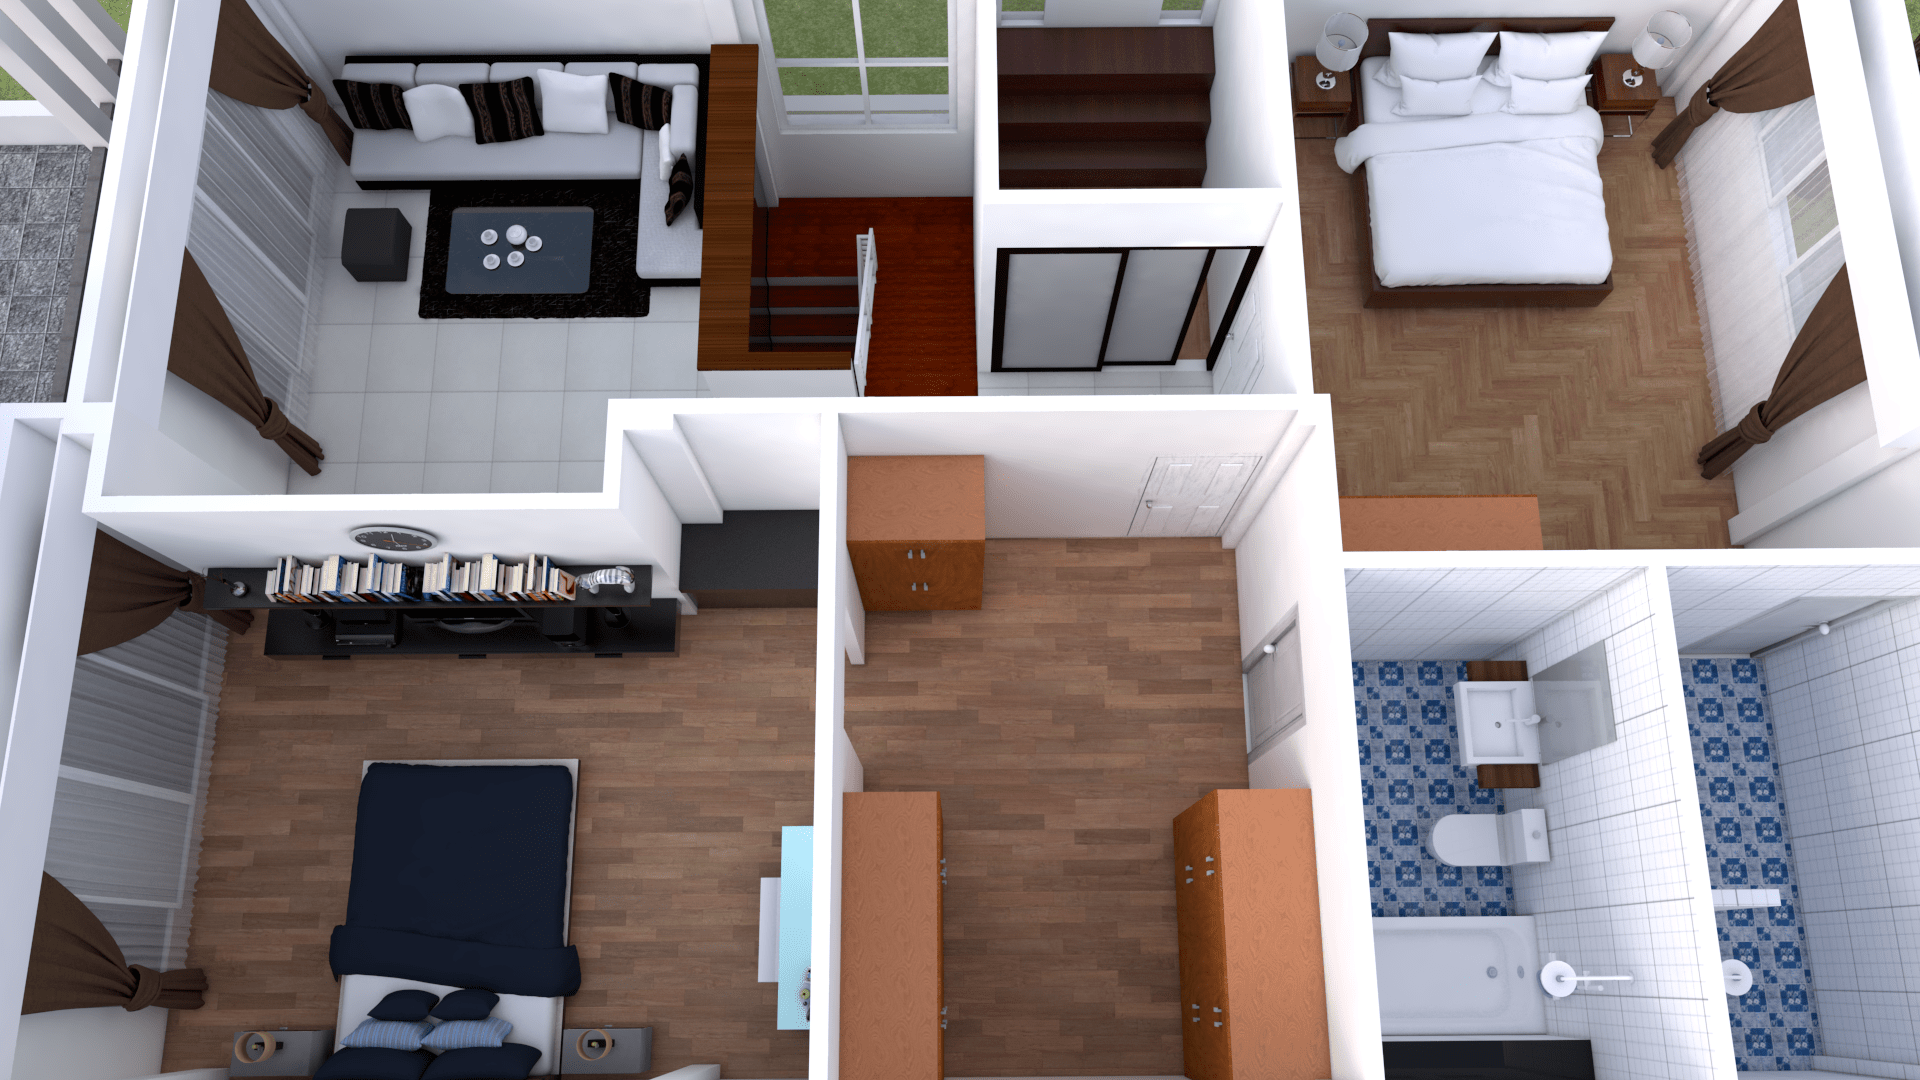 Plan 3d Interior Design Home Plan 8x13m Full Plan 3beds With